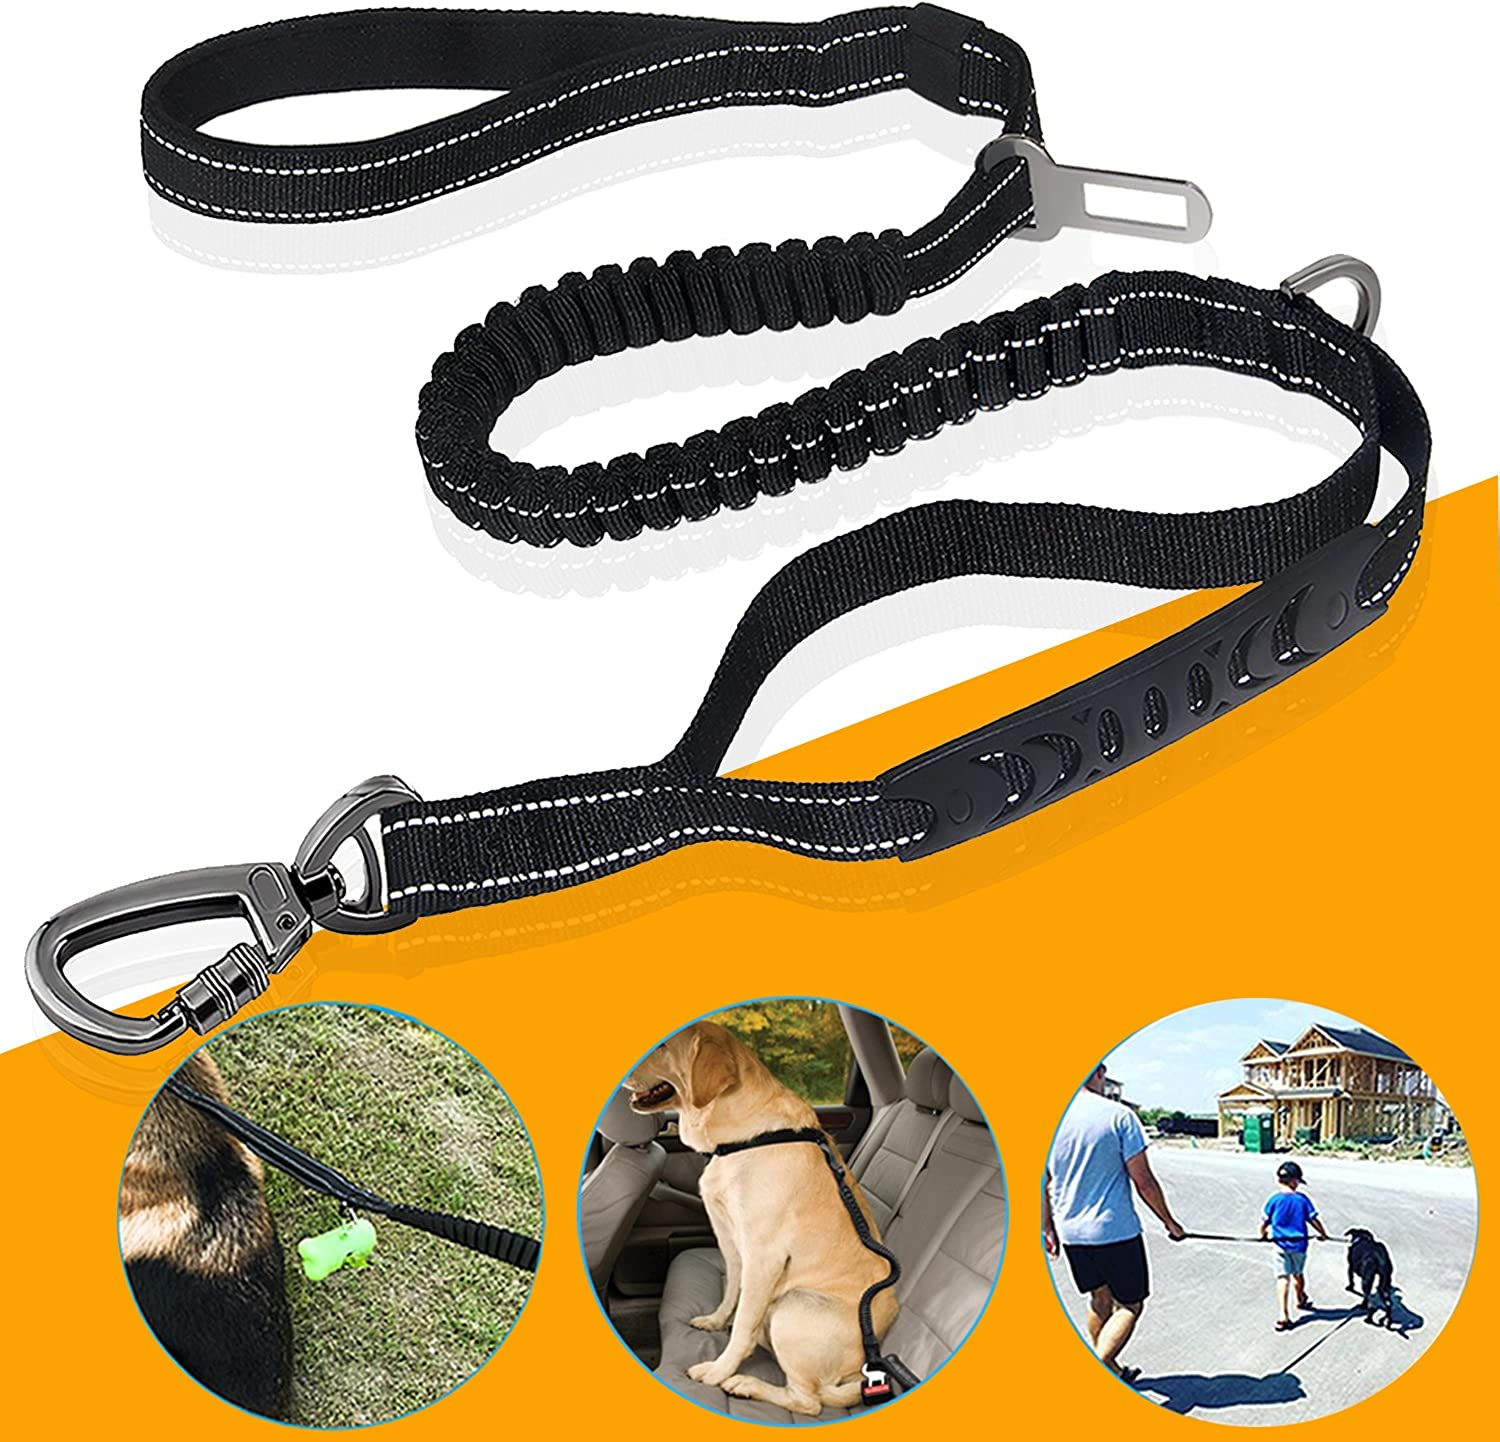 Fashion&cool Heavy Duty Dog Leash Especially Large Dogs Up to 150lbs, 6 Ft Reflective Dog Walking Training Shock Absorbing Bungee Leash Car Seat Belt Buckle, 2 Padded Traffic Handle Extra Control